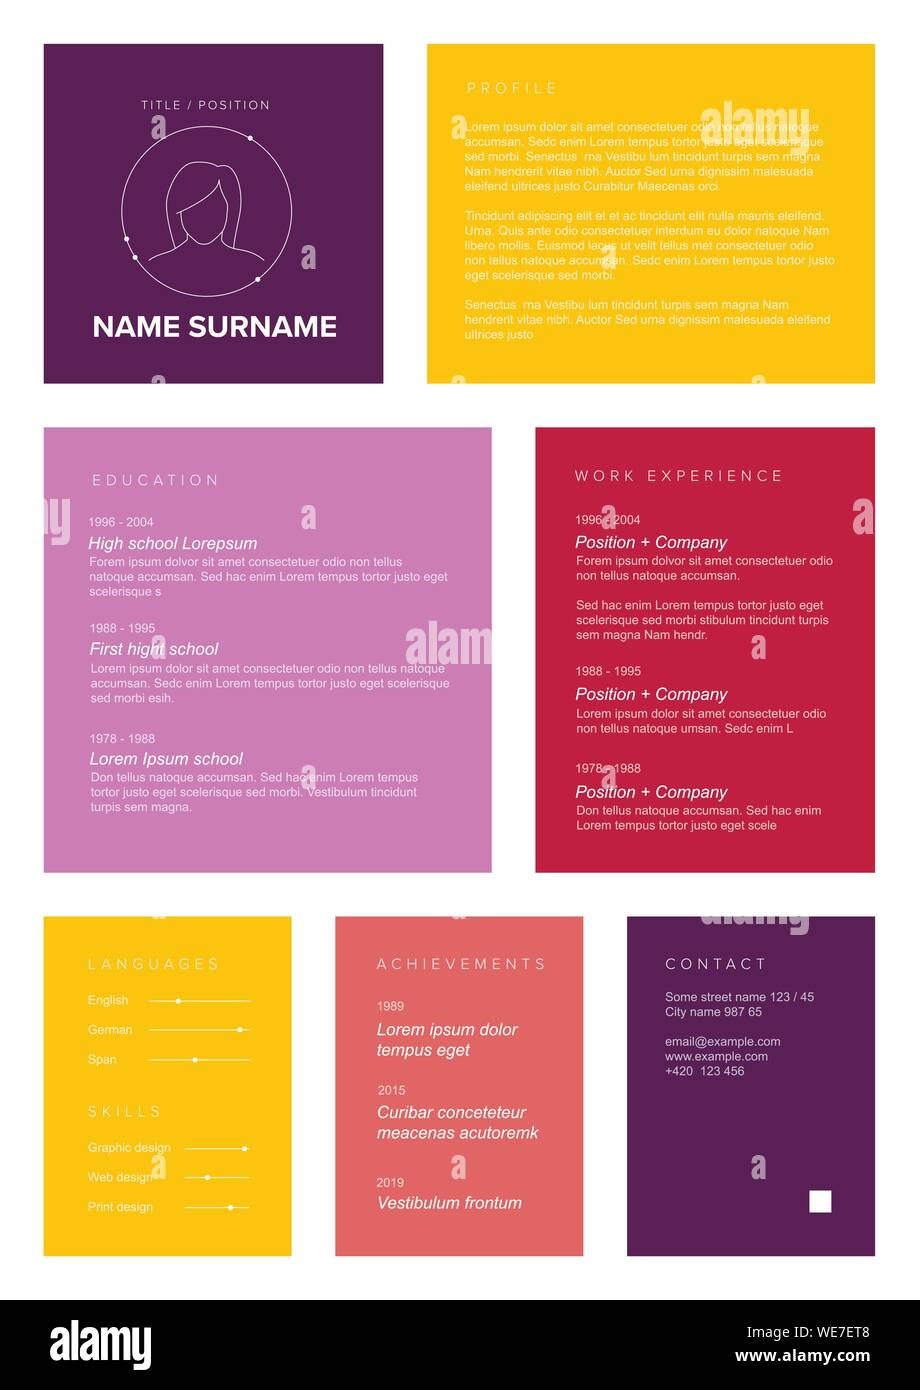 How to format resumes in microsoft office word with and without templates. Vector Female Minimalist Cv Resume Template With Color Blocks Design For Girls And Women Stock Vector Image Art Alamy